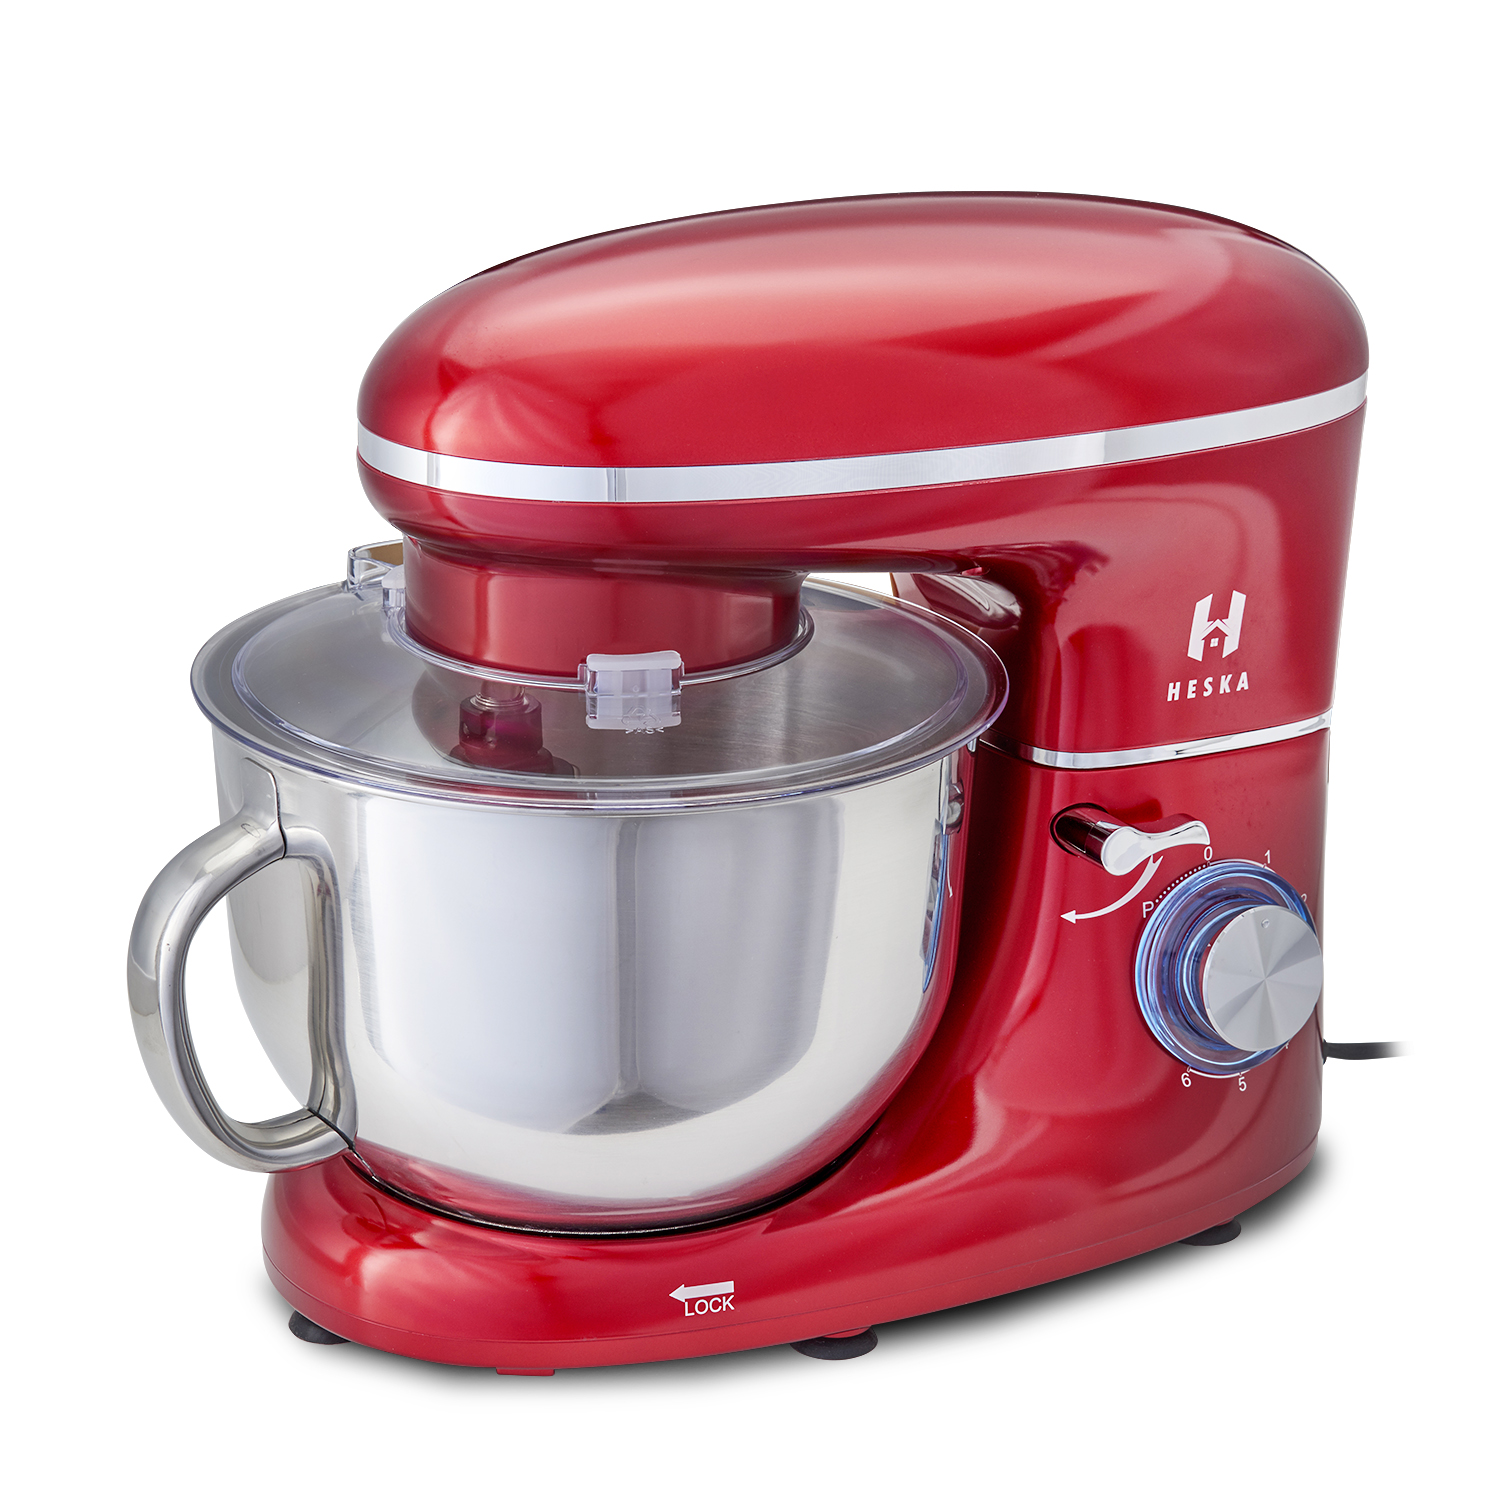 RED STAND MIXER.jpg